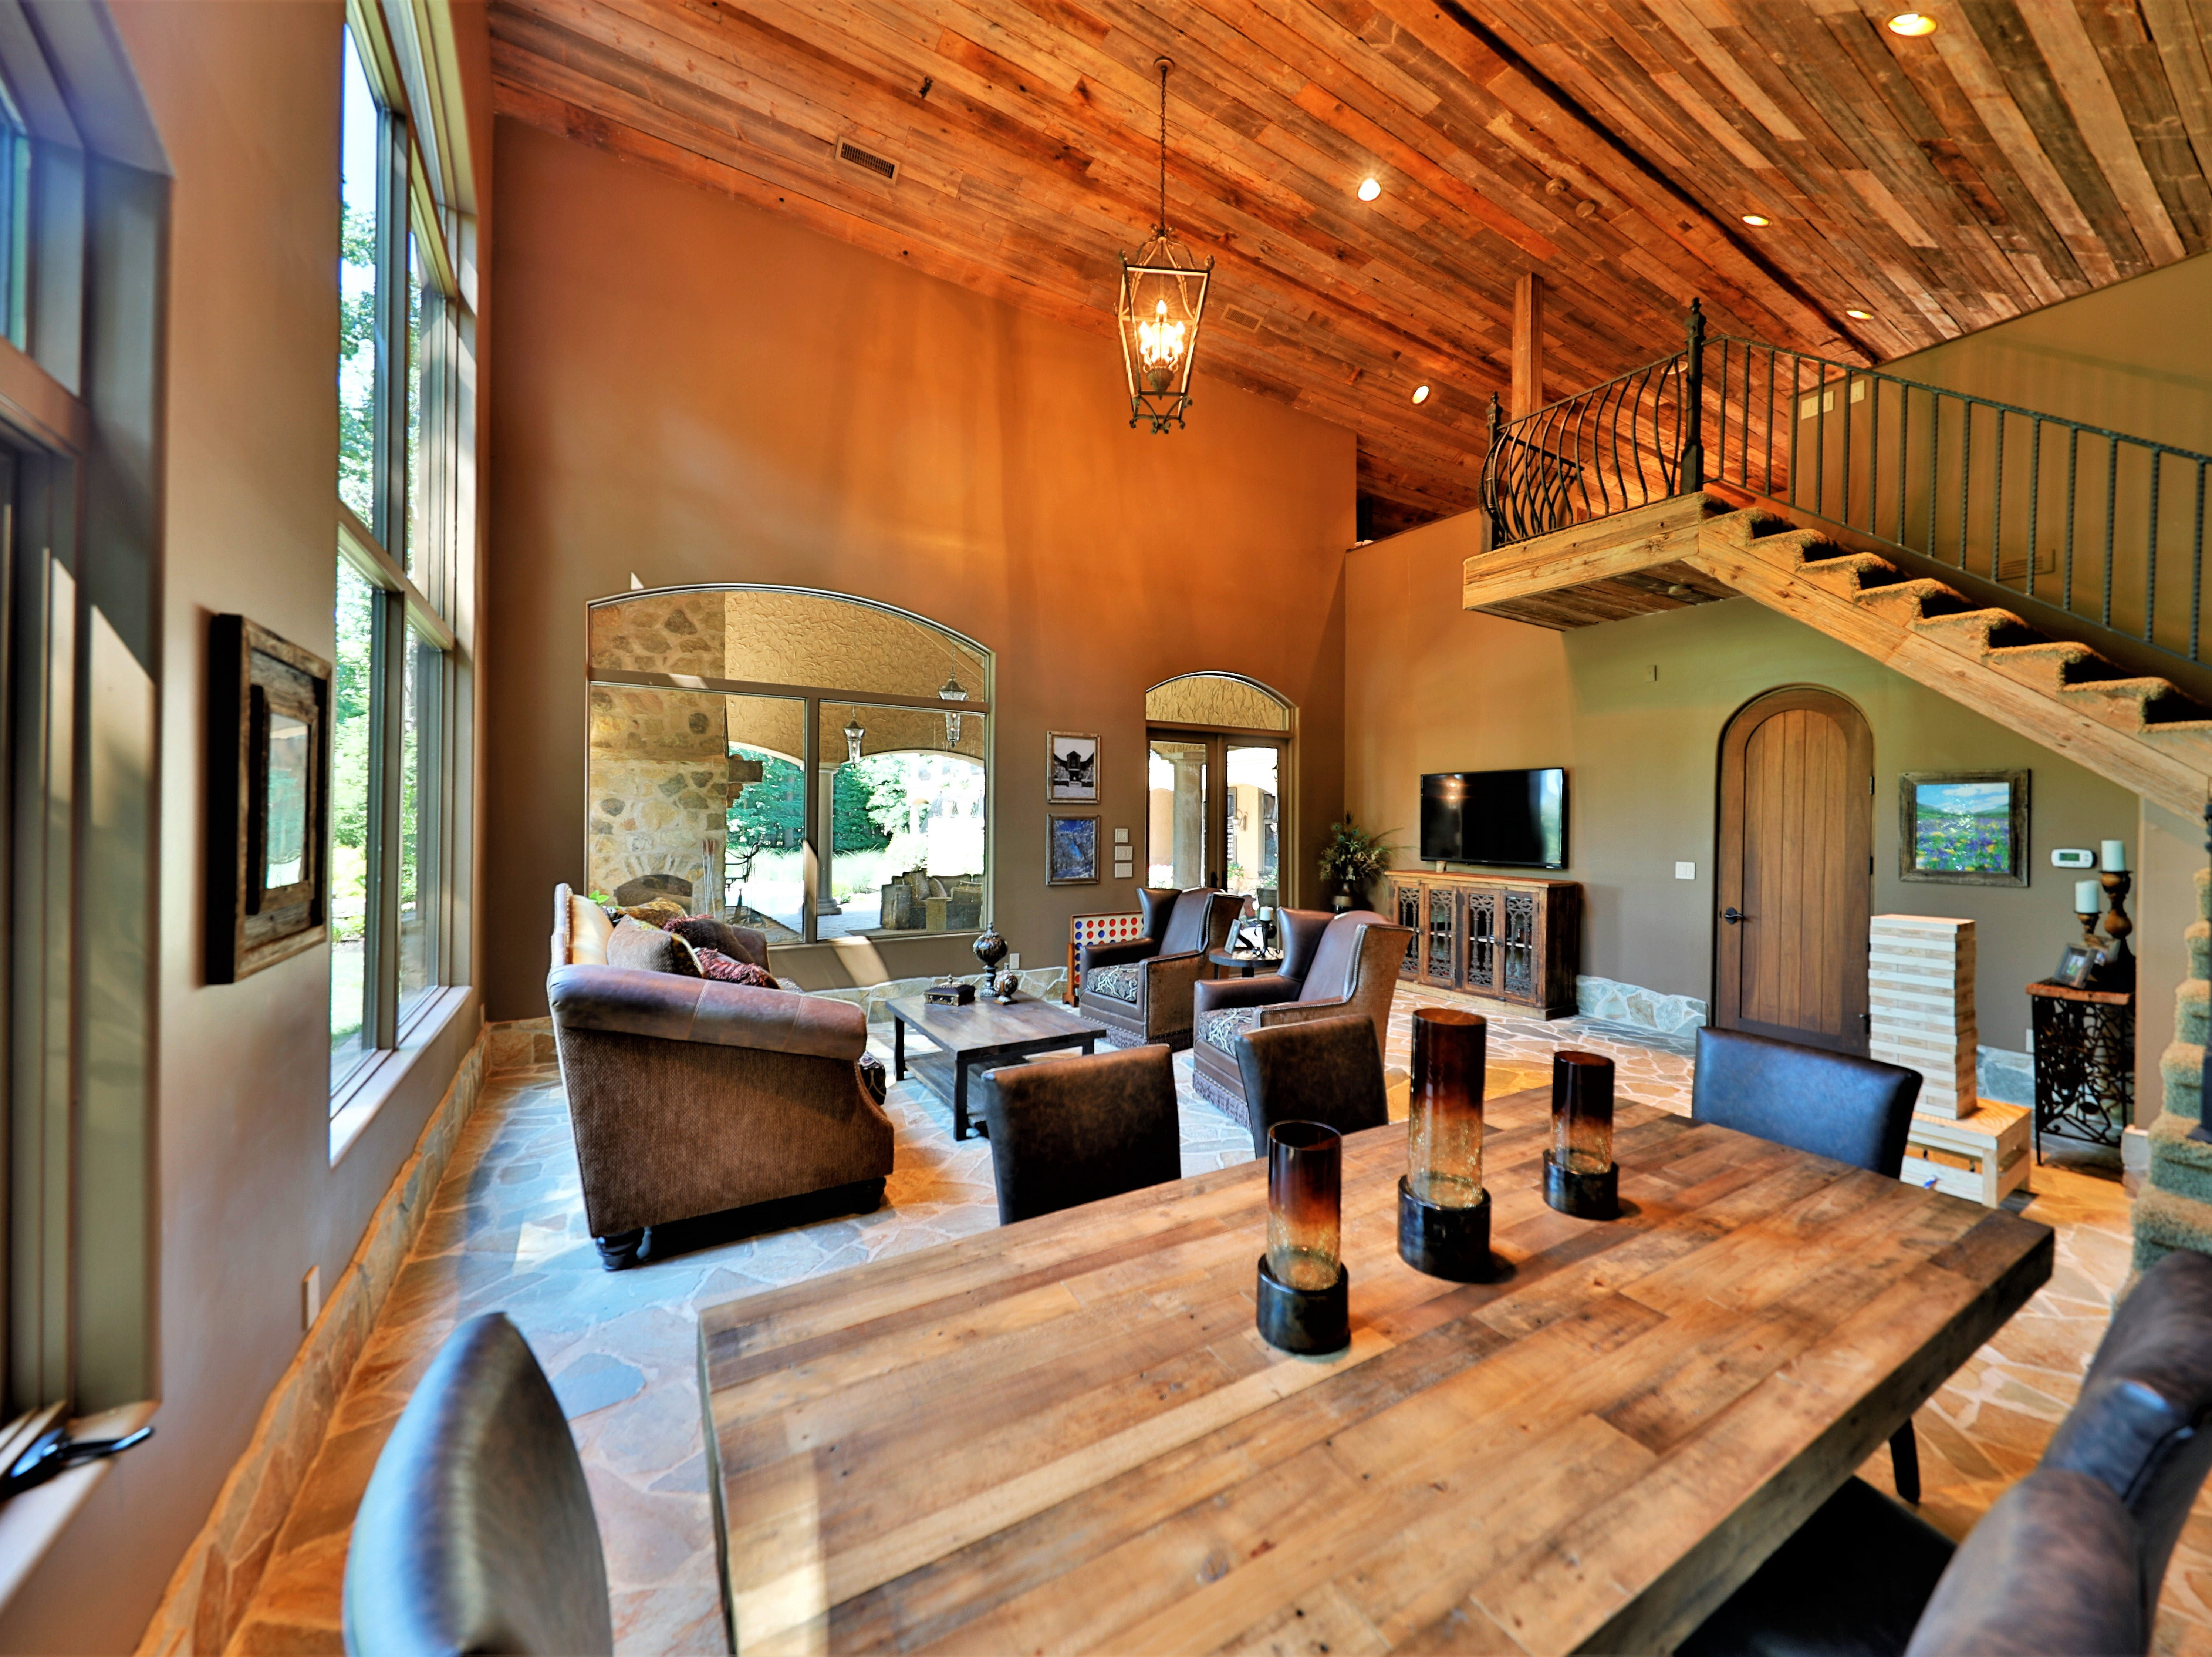 Inside the pool house is an indoor living area and dining room.